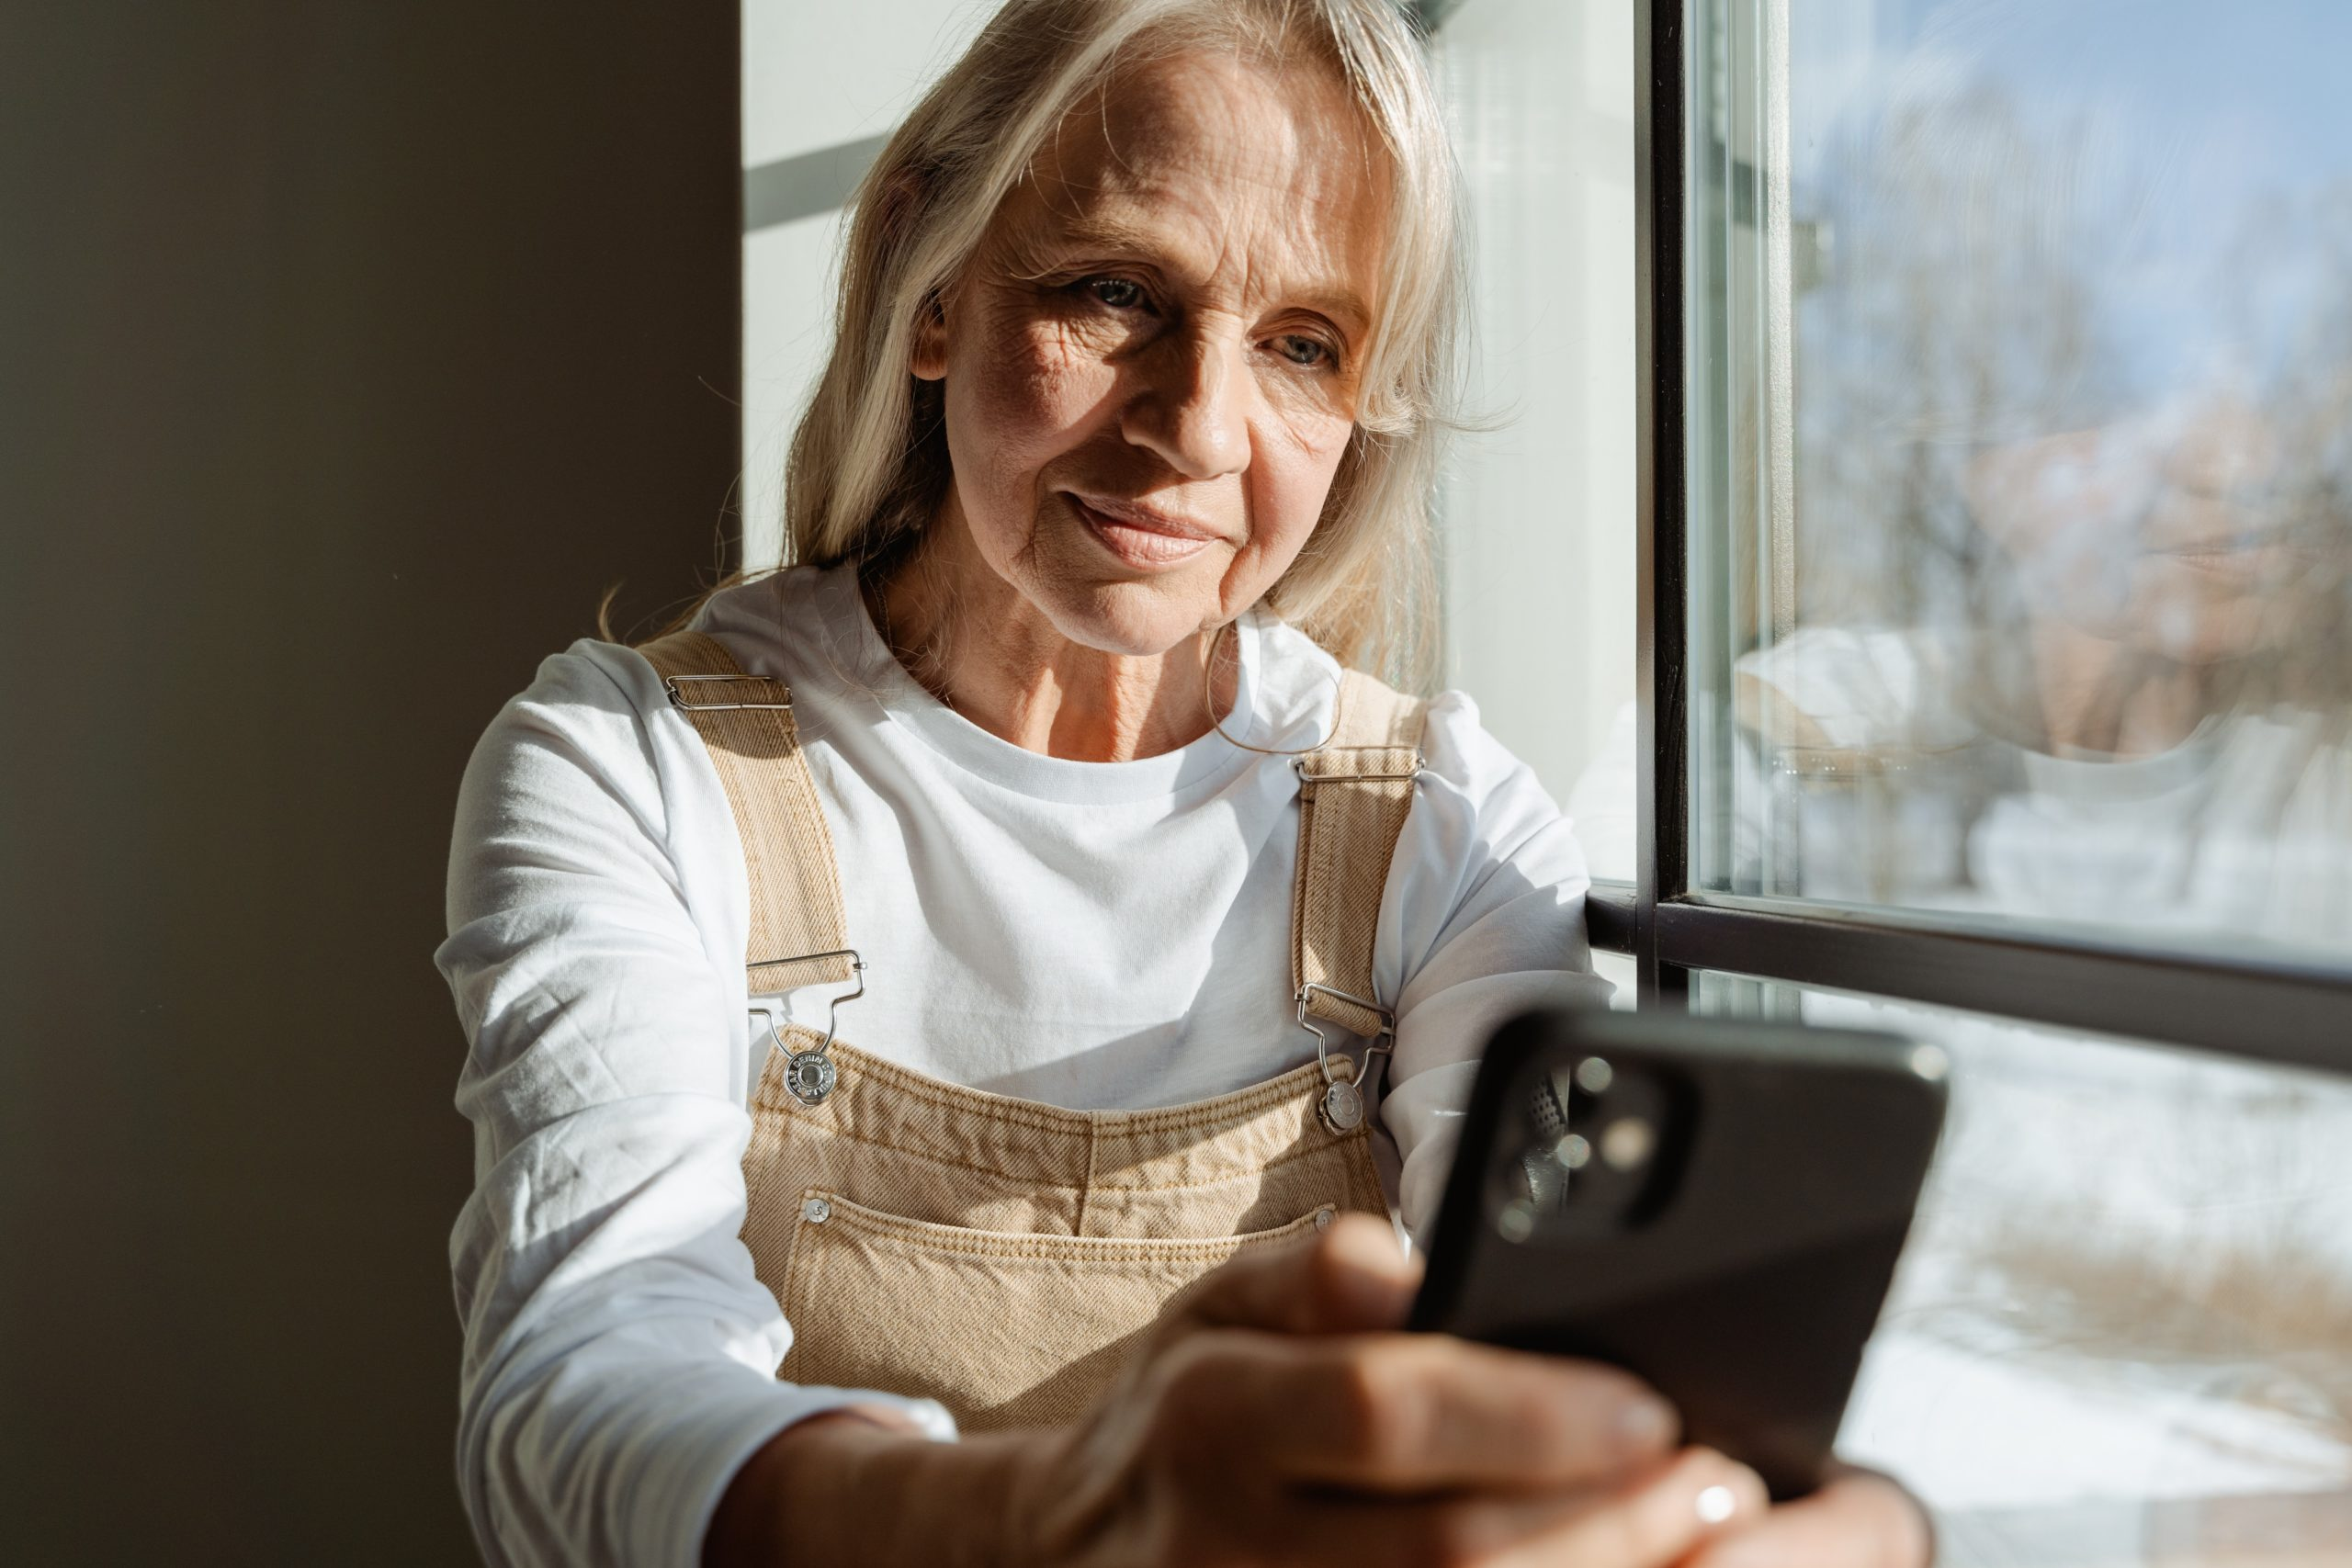 Older woman looking at her phone by the window